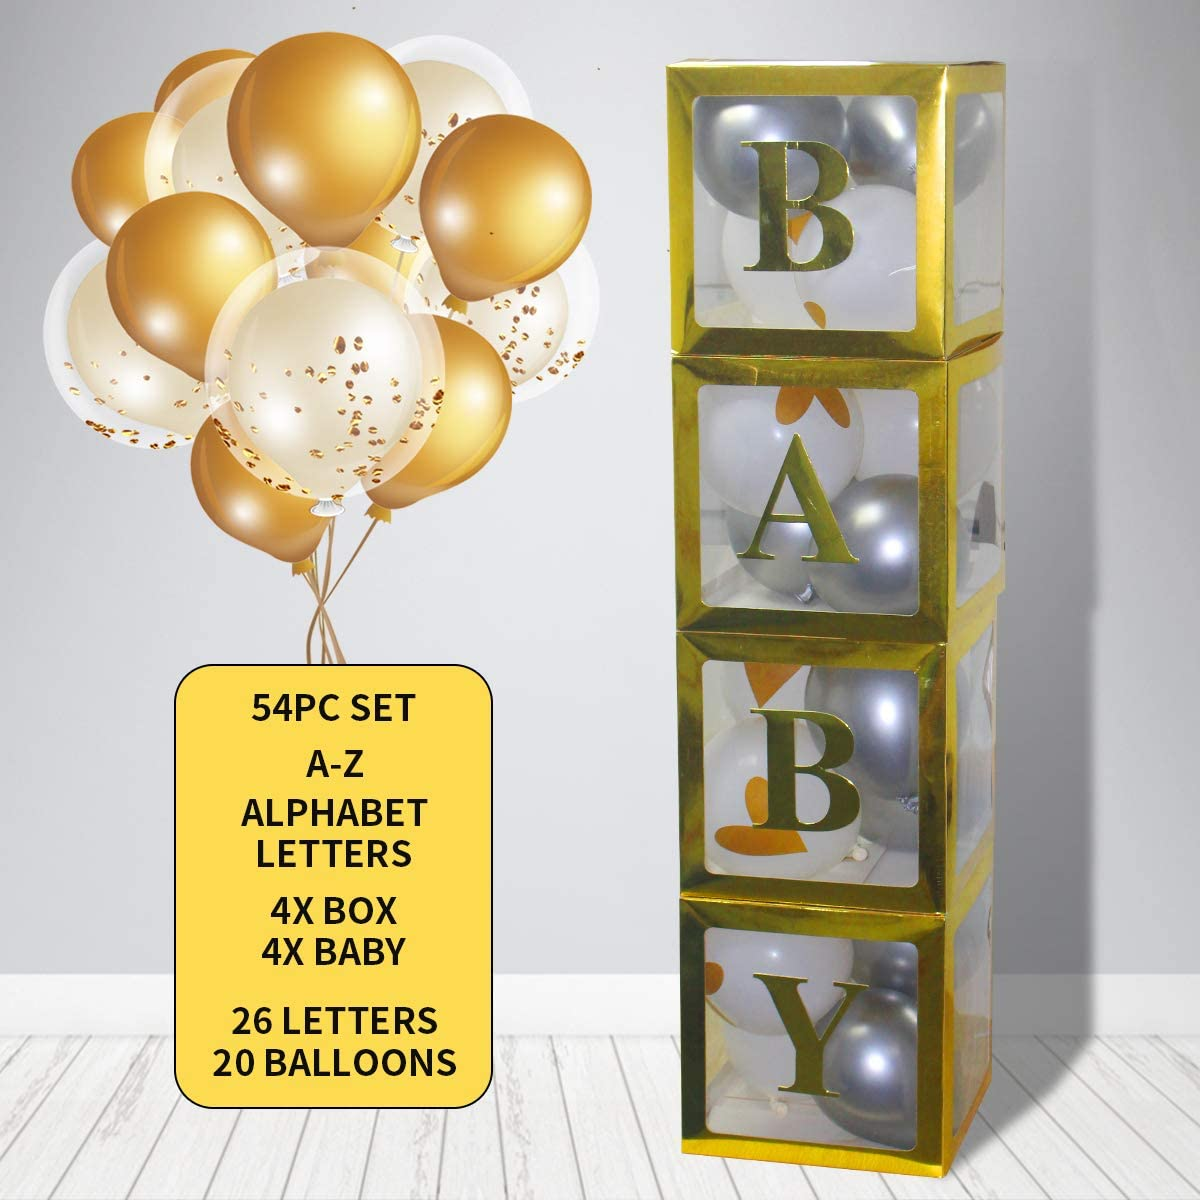 LOVE MEI 54 Pcs Gold Baby Shower Blocks With Ballons Decorations Set , DIY Name 4pcs White Transparent Boxes with A - Z Letters, Birthday Party Boxes For Girl And Boy Gender Reveal Supplies, Bridal ,Wedding, Parties, Events ,Home Decor Backdrop